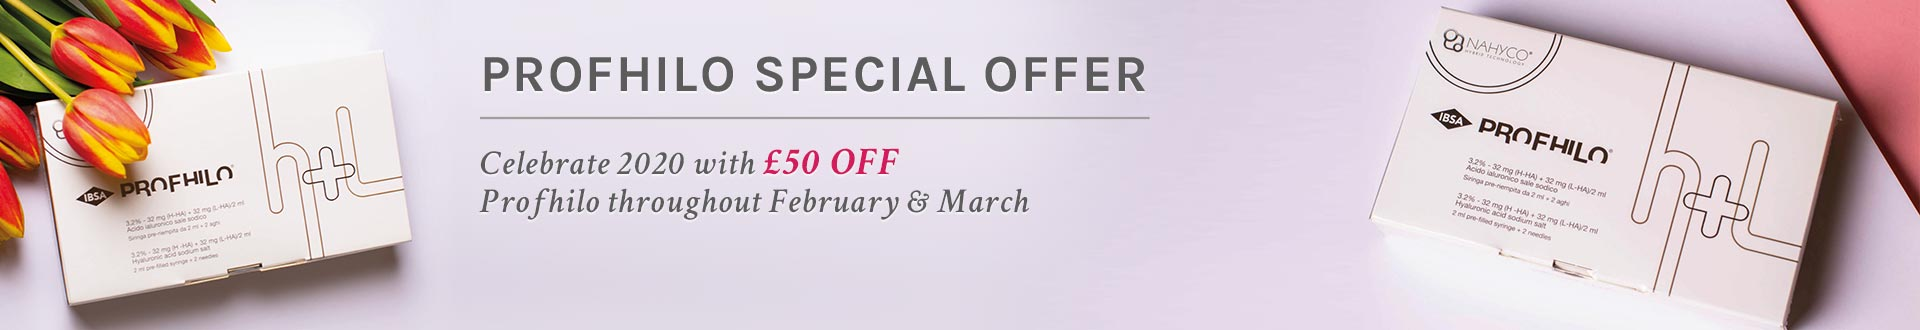 Profhilo special offer. Celebrate 2020 with £50 off Profhilo throughout February & March.